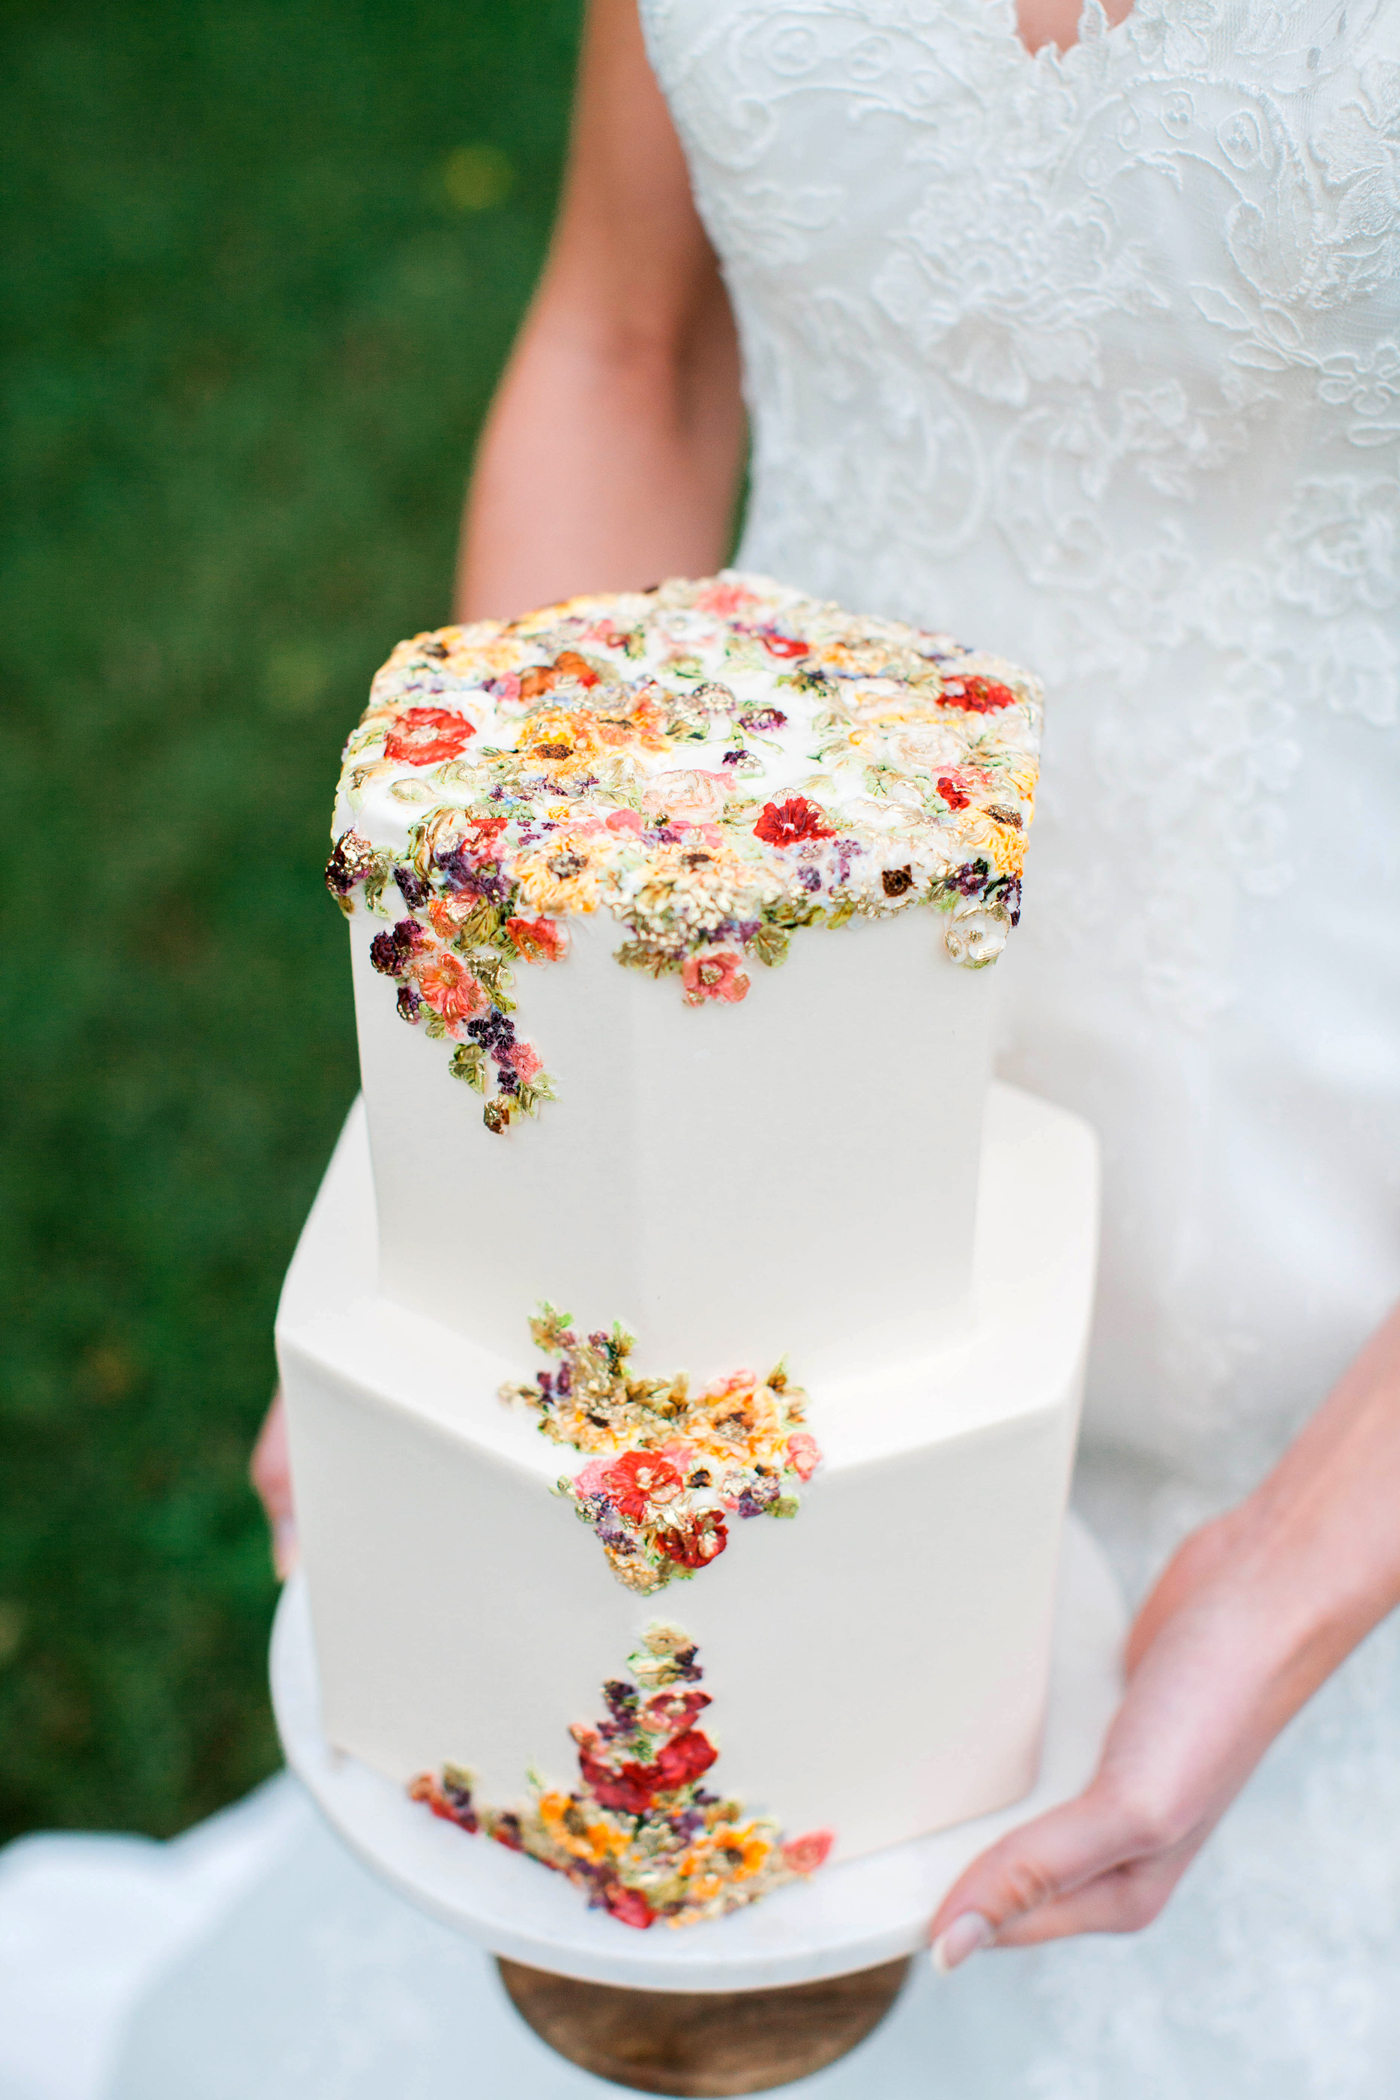 floral frosting design two tiered white wedding cake